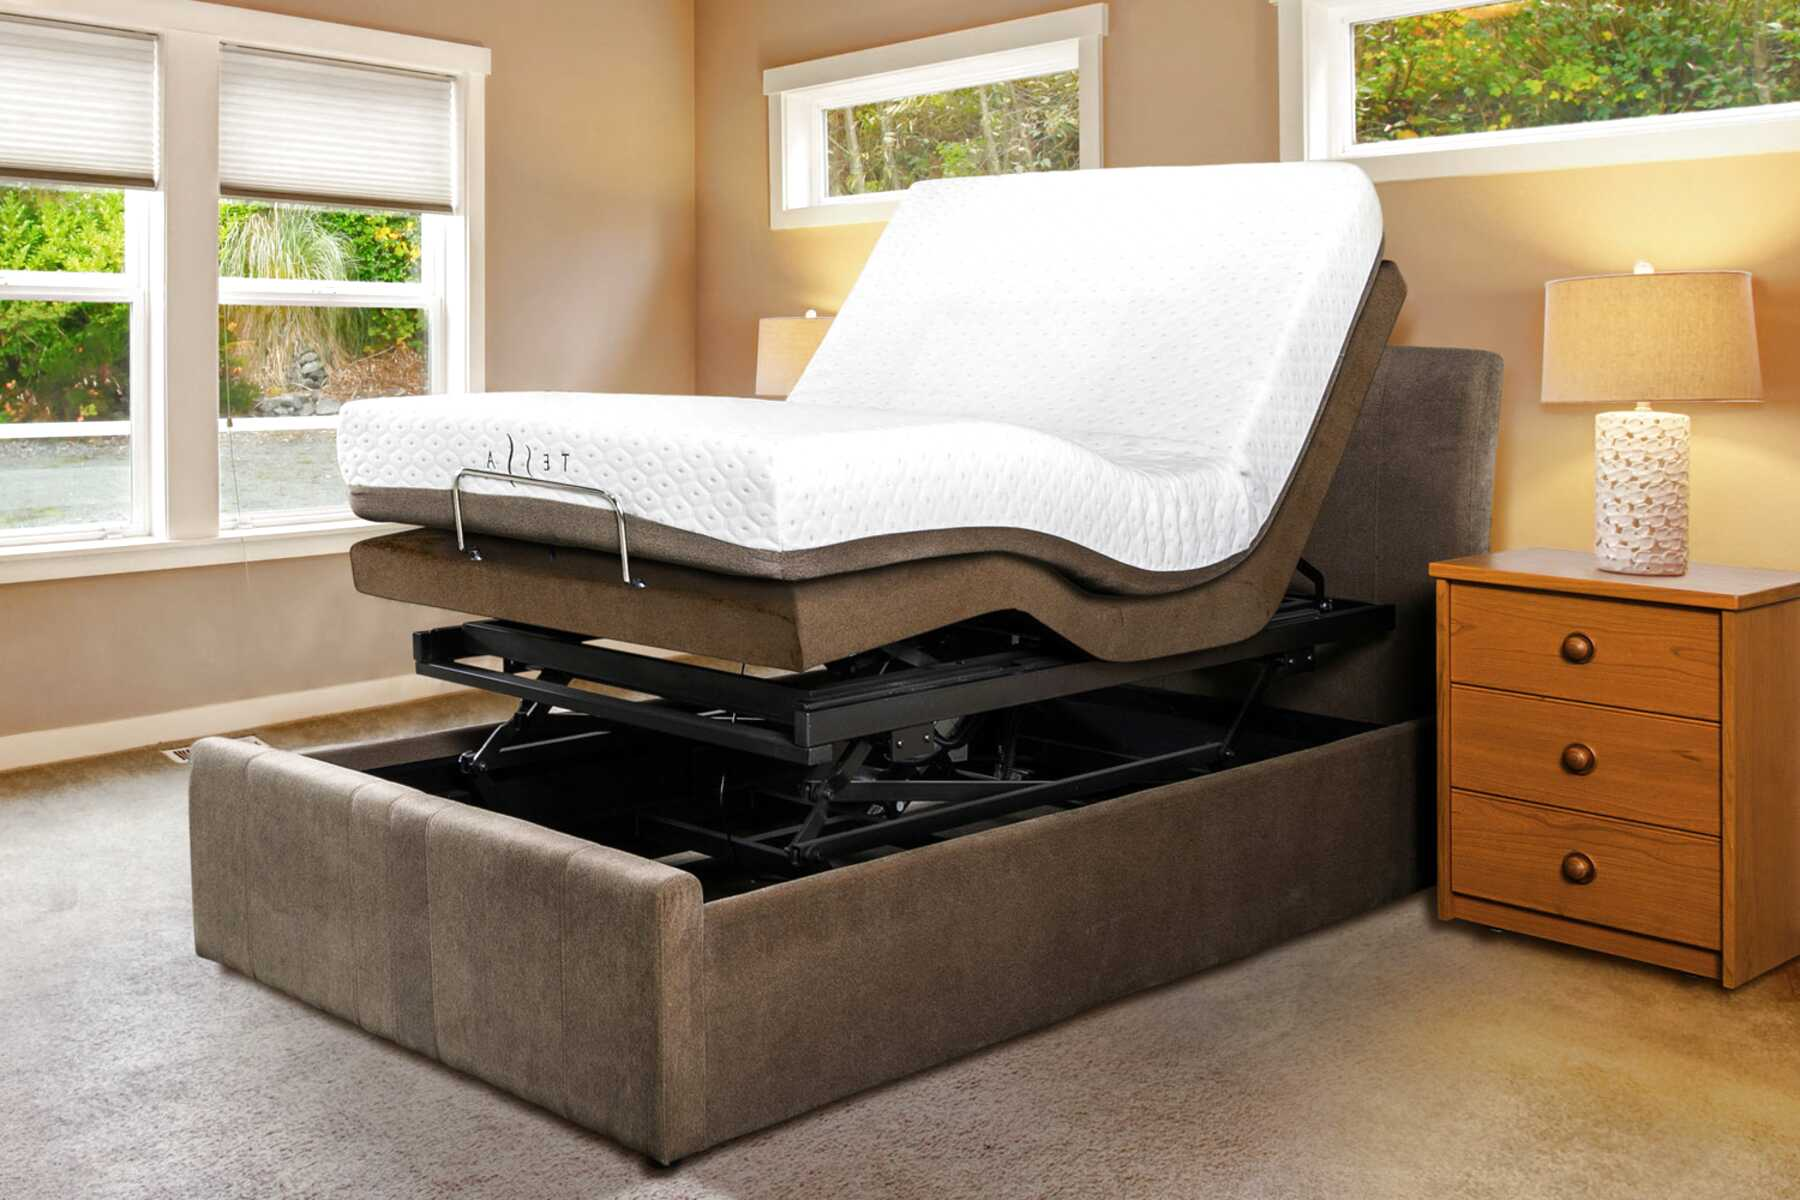 Picture of: Second Hand Electric Adjustable Beds In Ireland